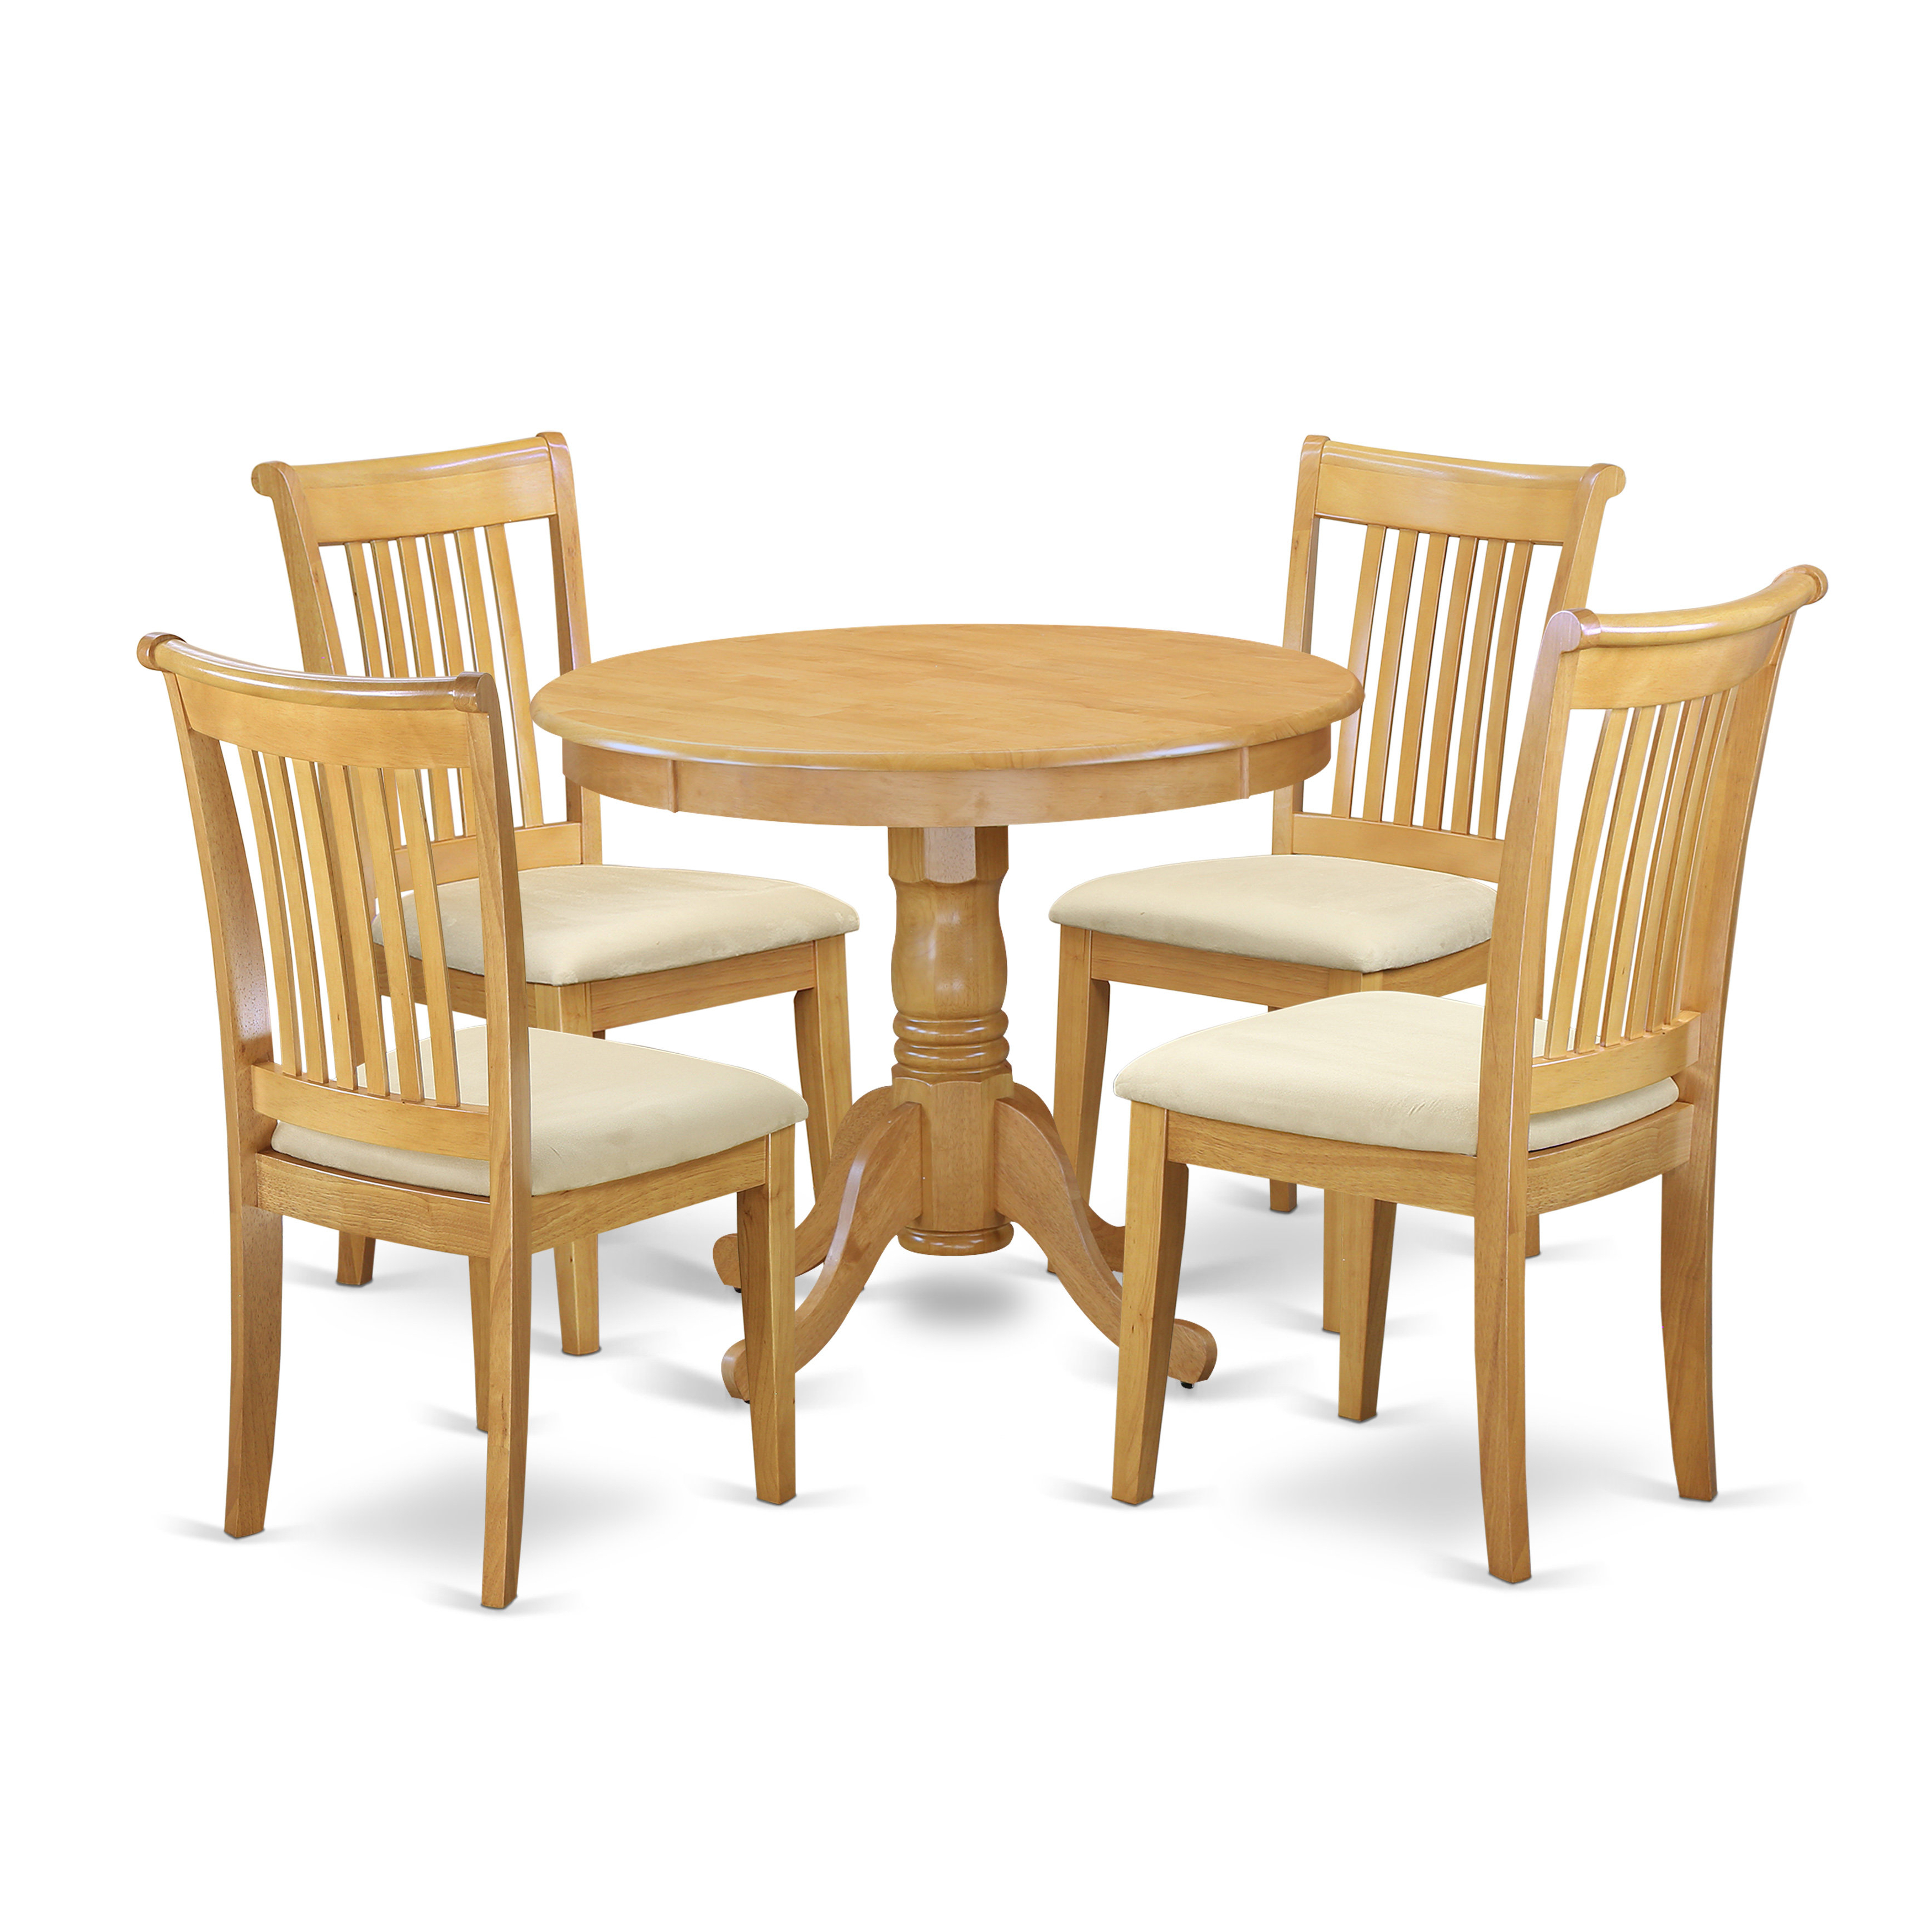 5 Piece Breakfast Nook Dining Sets throughout Well known August Grove Asher 5 Piece Breakfast Nook Dining Set